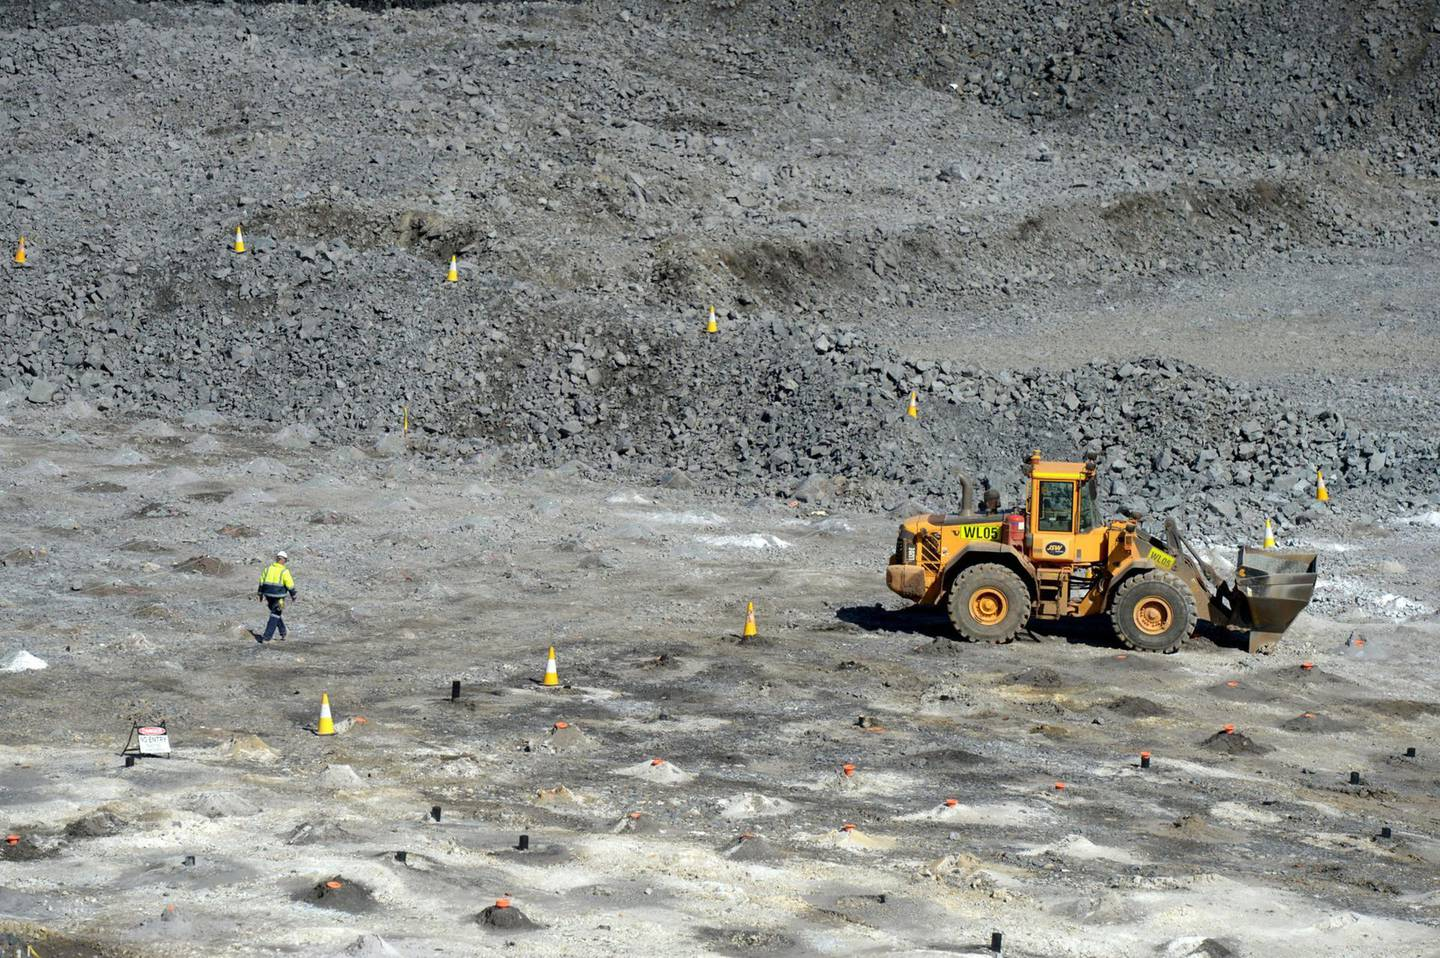 A worker set an area for explosives on a mine floor at the Bald Hill lithium mine site, co-owned by Tawana Resources Ltd. and Alliance Mineral Assets Ltd., outside of Widgiemooltha, Australia, on Monday, Aug. 6, 2018. Australia's newest lithium exporterTawana is in talks with potential customers over expansion of itsBaldHillmine and sees no risk of an oversupply that would send prices lower. Photographer: Carla Gottgens/Bloomberg